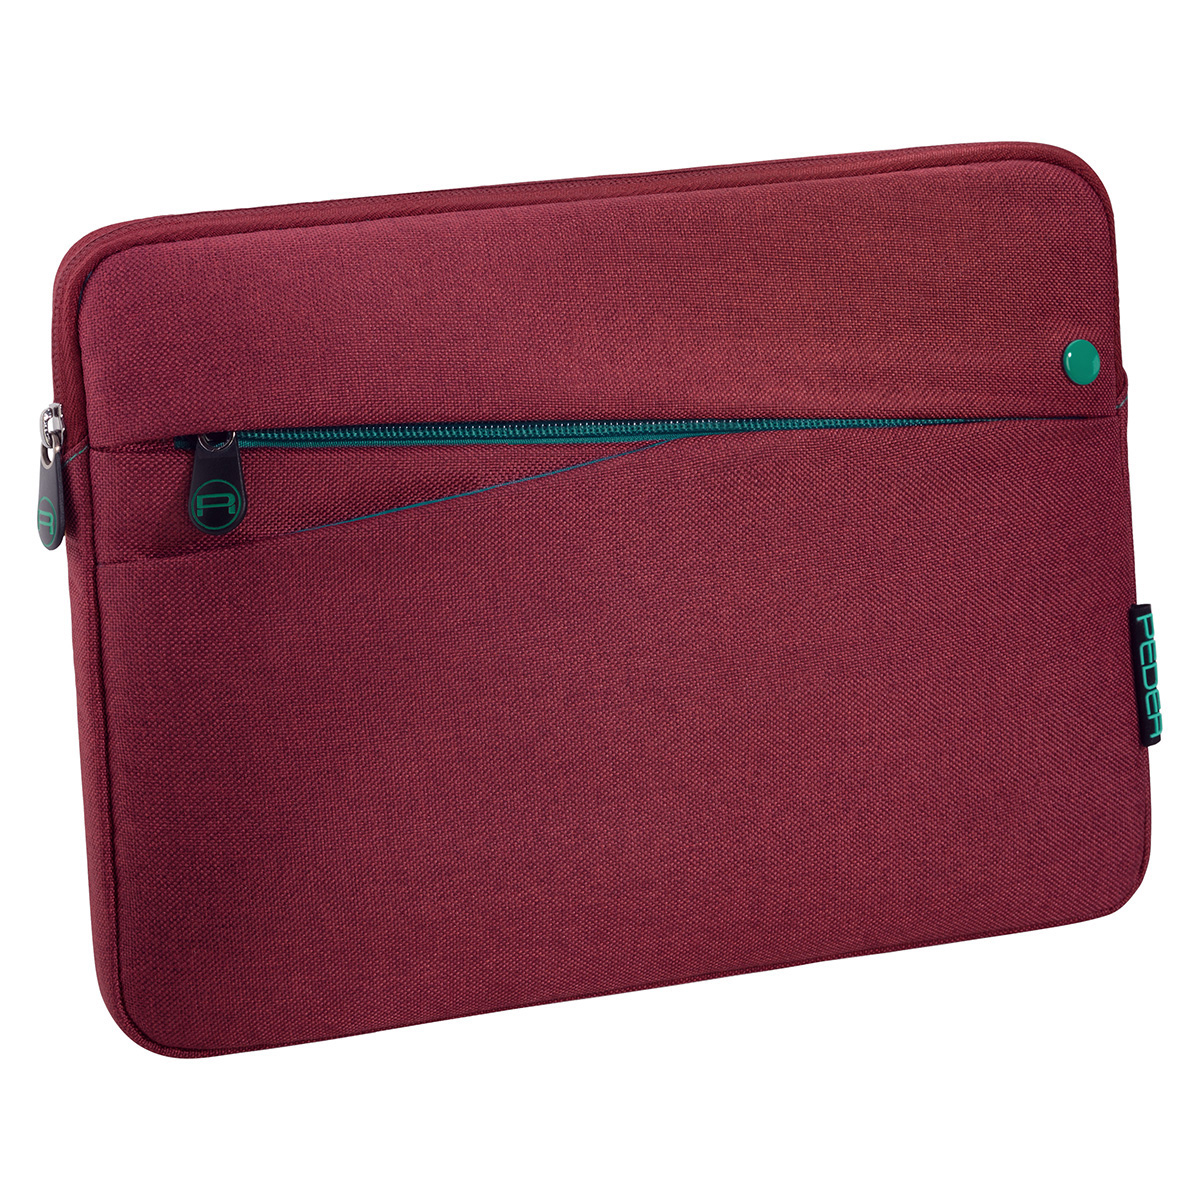 "PEDEA Tablet-Tasche 10,1"" (25,7cm) rot ""Fashion"""